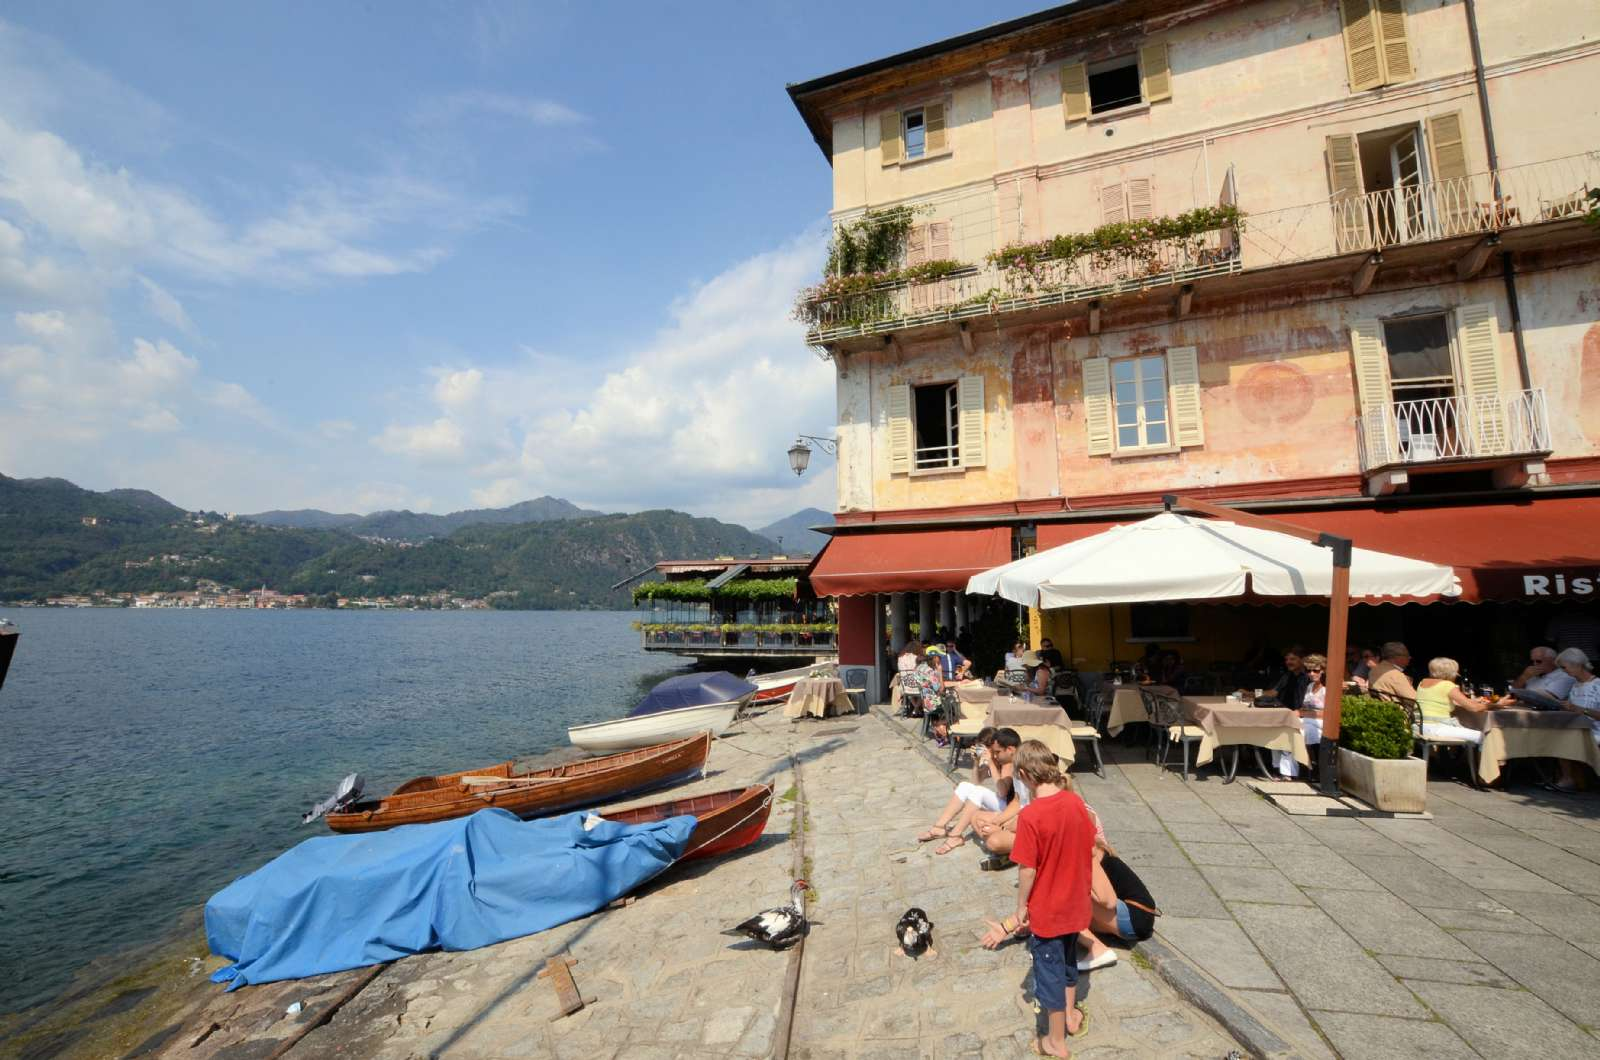 The Square - Piazza Motta looking directly out into Lake